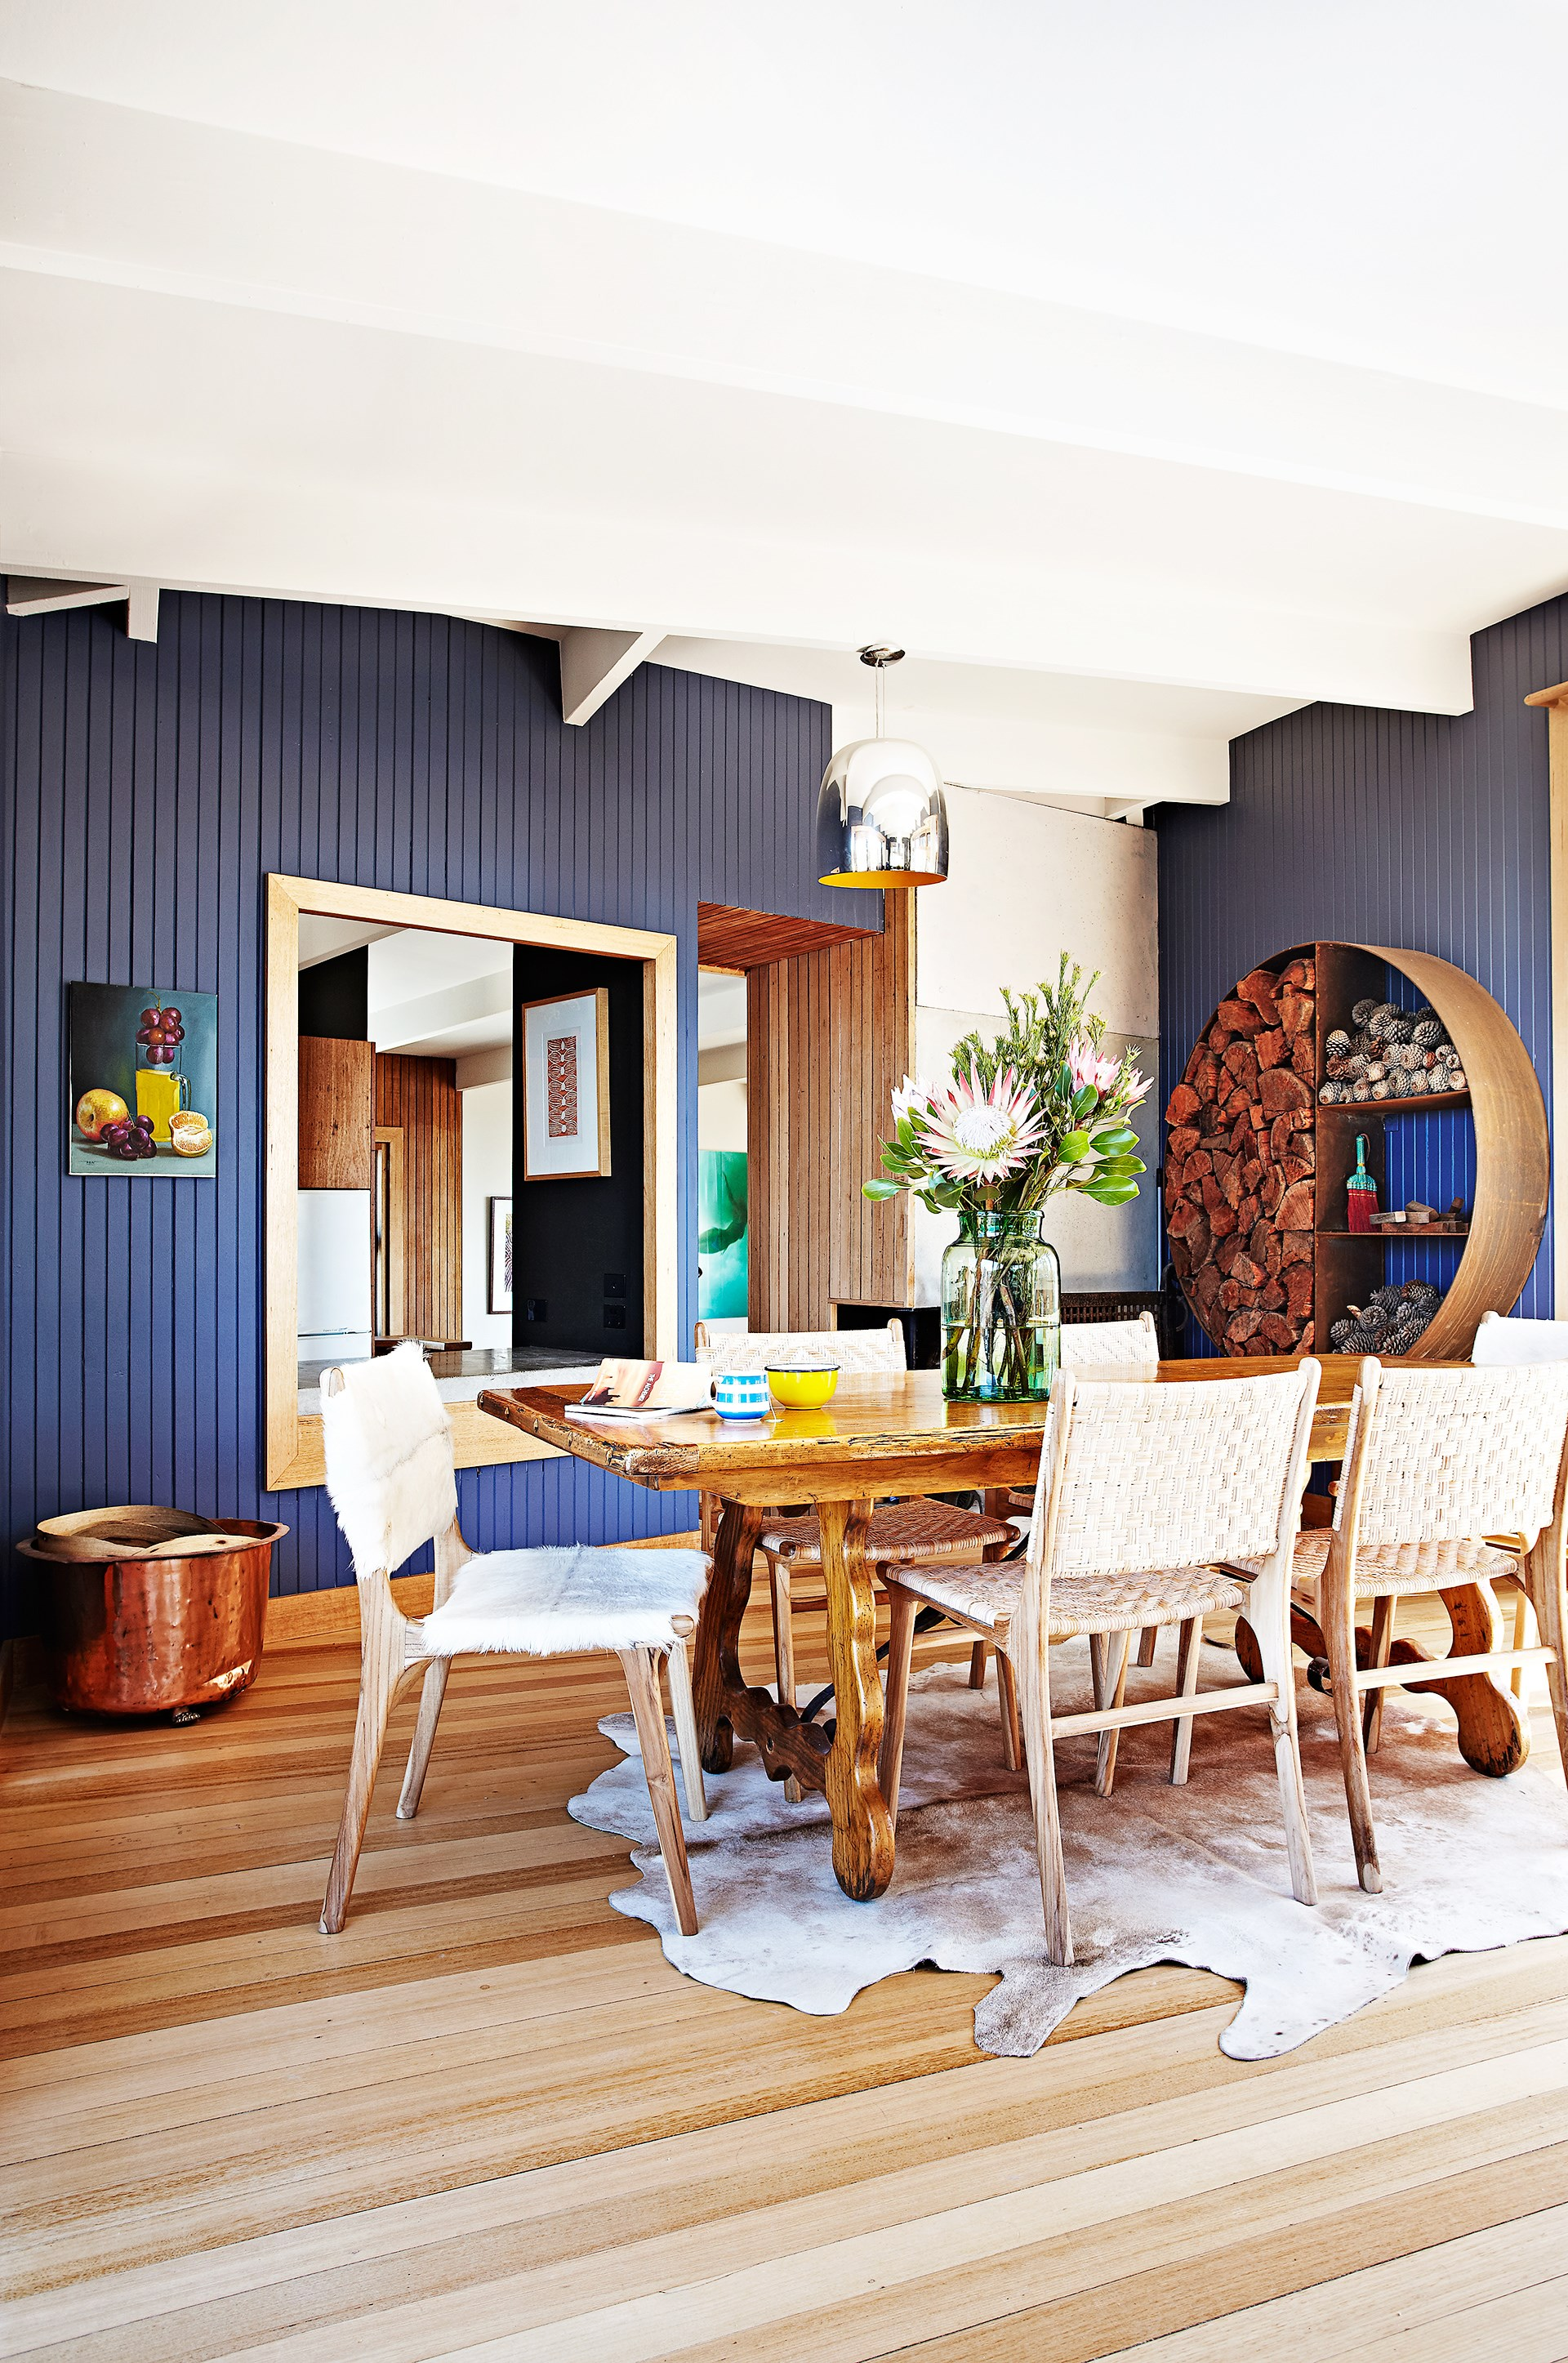 "[> Kip & Co co-owner Kate Heppell used vibrant hues throughout her Mornington Peninsula home](http://www.homestolove.com.au/the-home-of-kip-and-co-co-owner-kate-heppell-3596|target=""_blank"")."